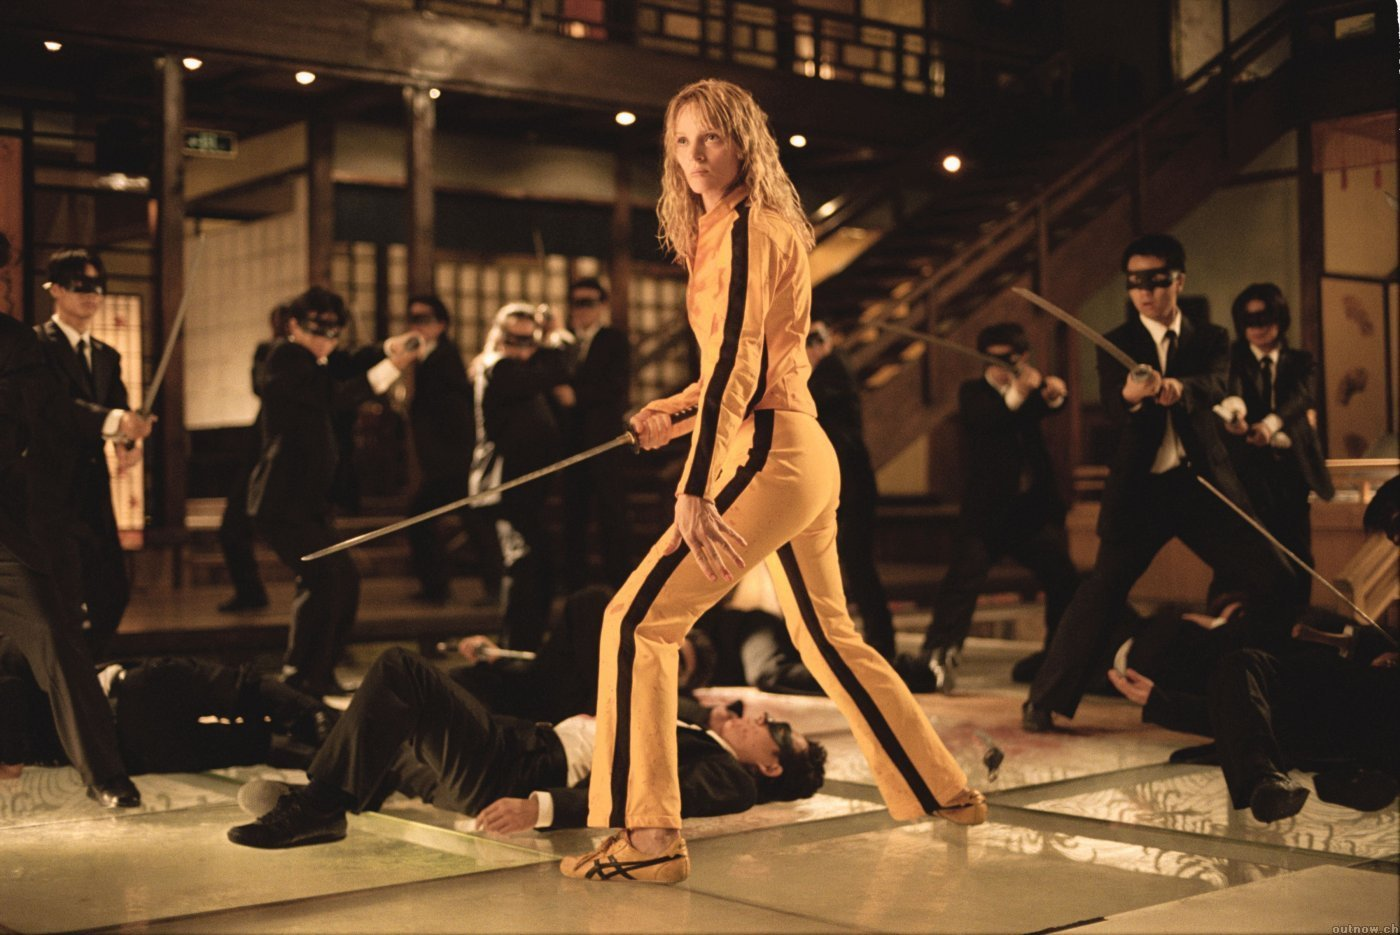 mise en sense kill bill 2010-1-11  silence of the sexes: gender inversion in jonathan demme's  bill needs to kill the  in regard to the film's mise-en-scene,.